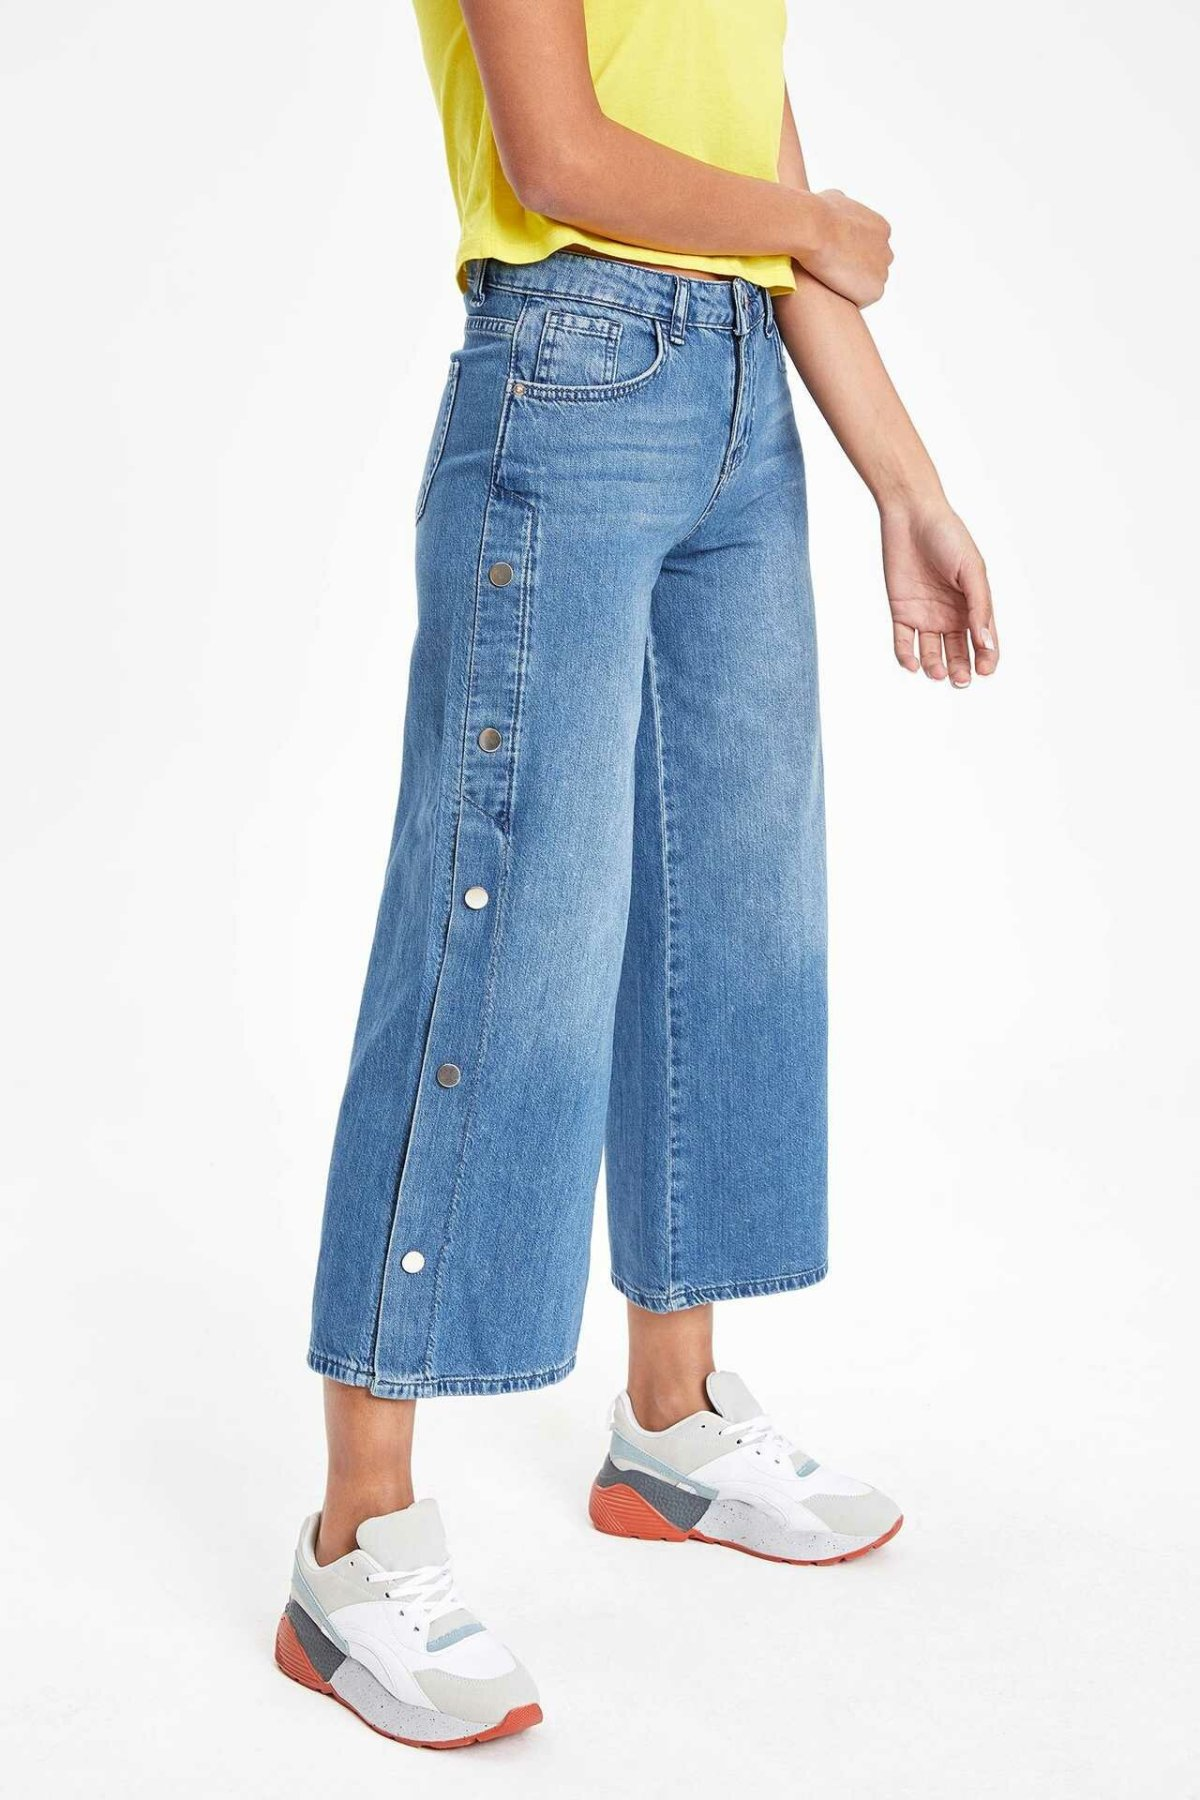 DeFacto Summer Autumn Light Blue Wide-Leg Denim Jeans Ankle-length Women Denim Trousers Casual Pants-J6083AZ18CW-J6083AZ18CW